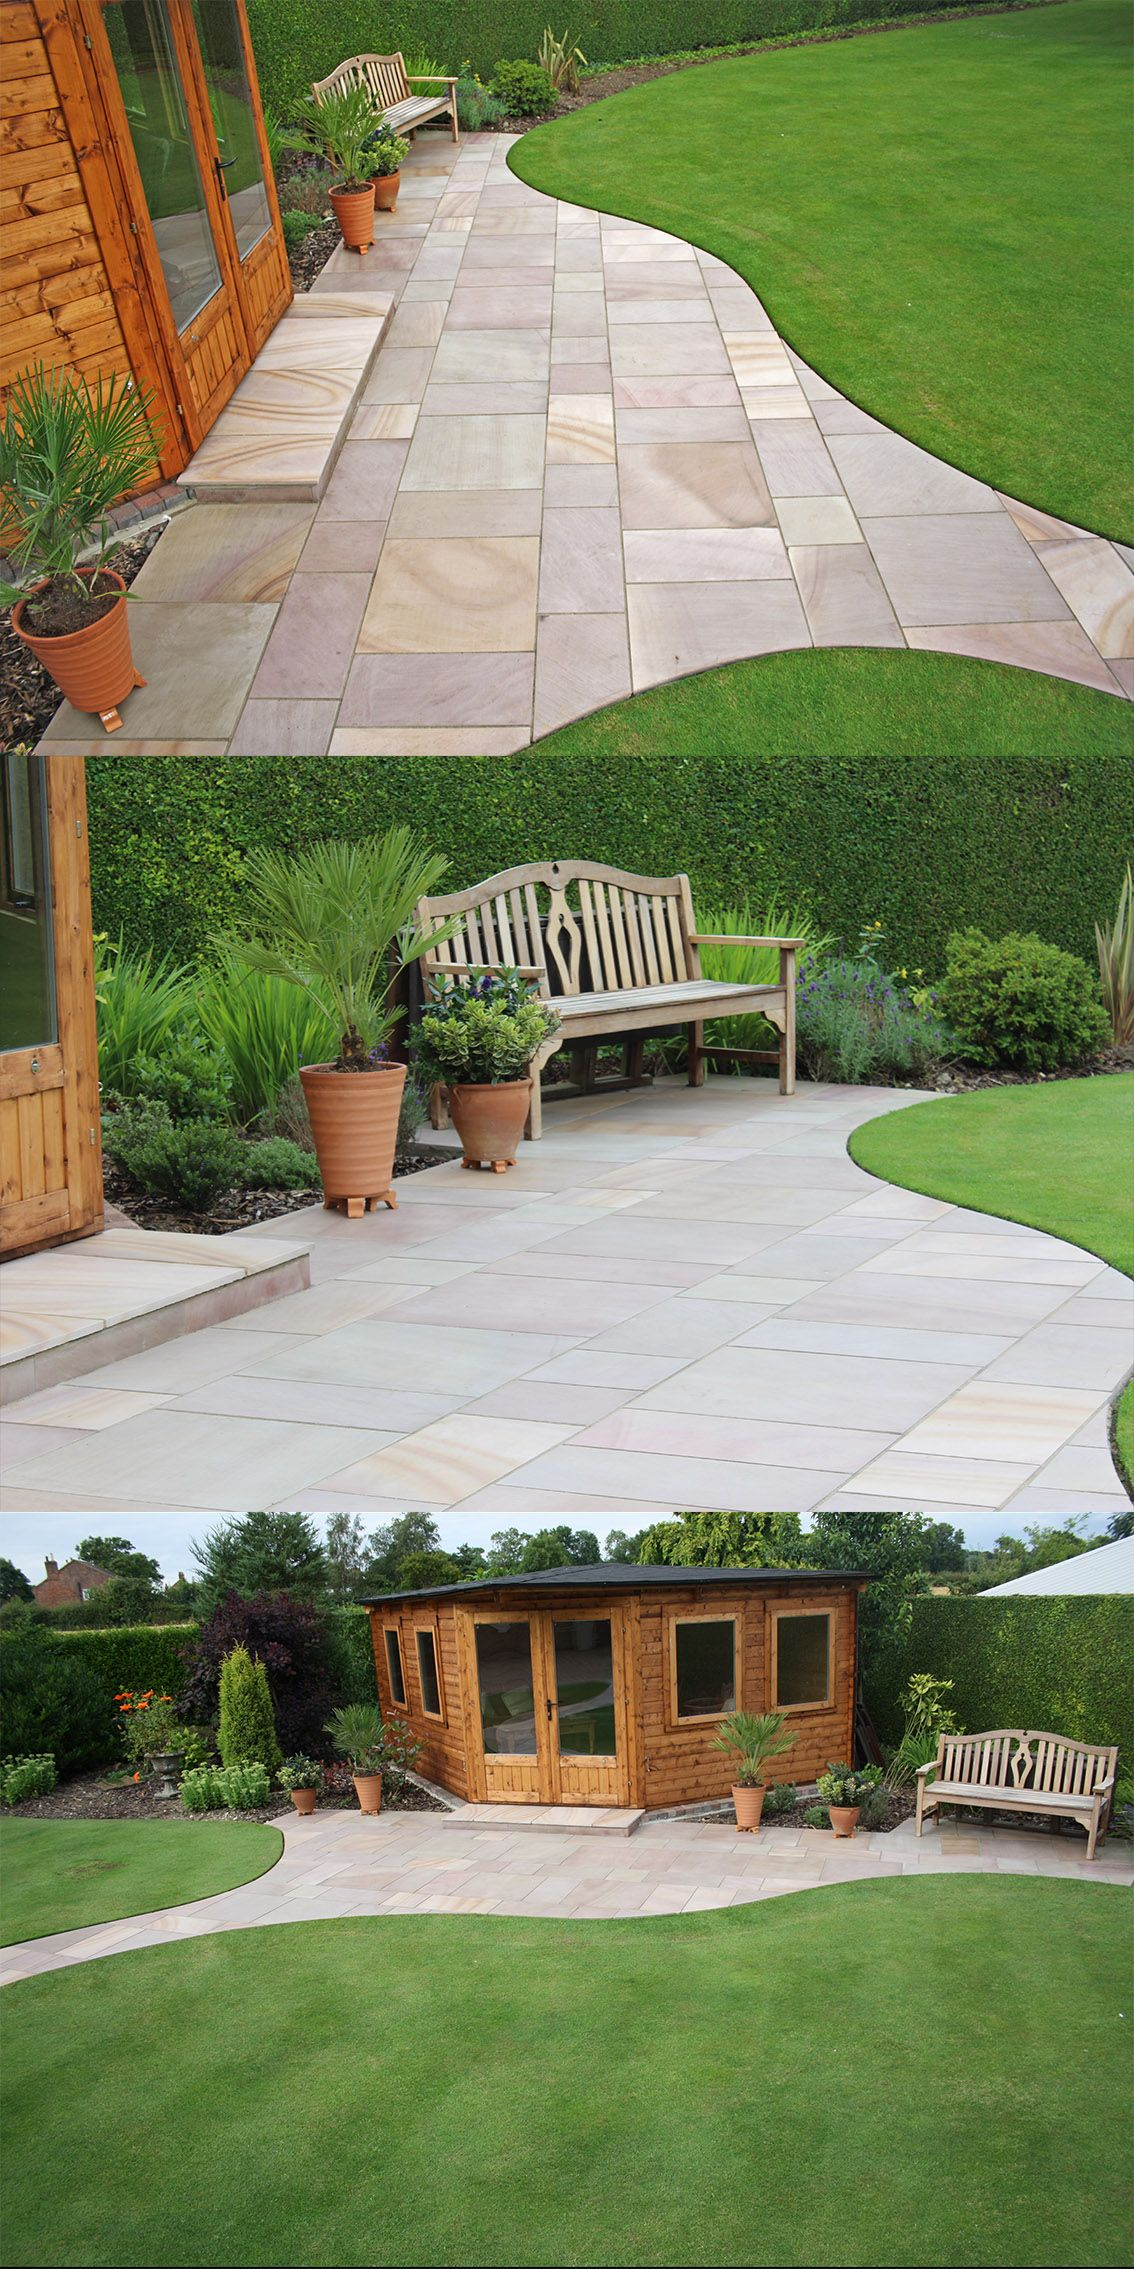 Beautiful Summer House And Patio Maple Sandstone Flagstones Stunning Colours Landscaping Patio Garden Paving Patio Garden Traditional Garden